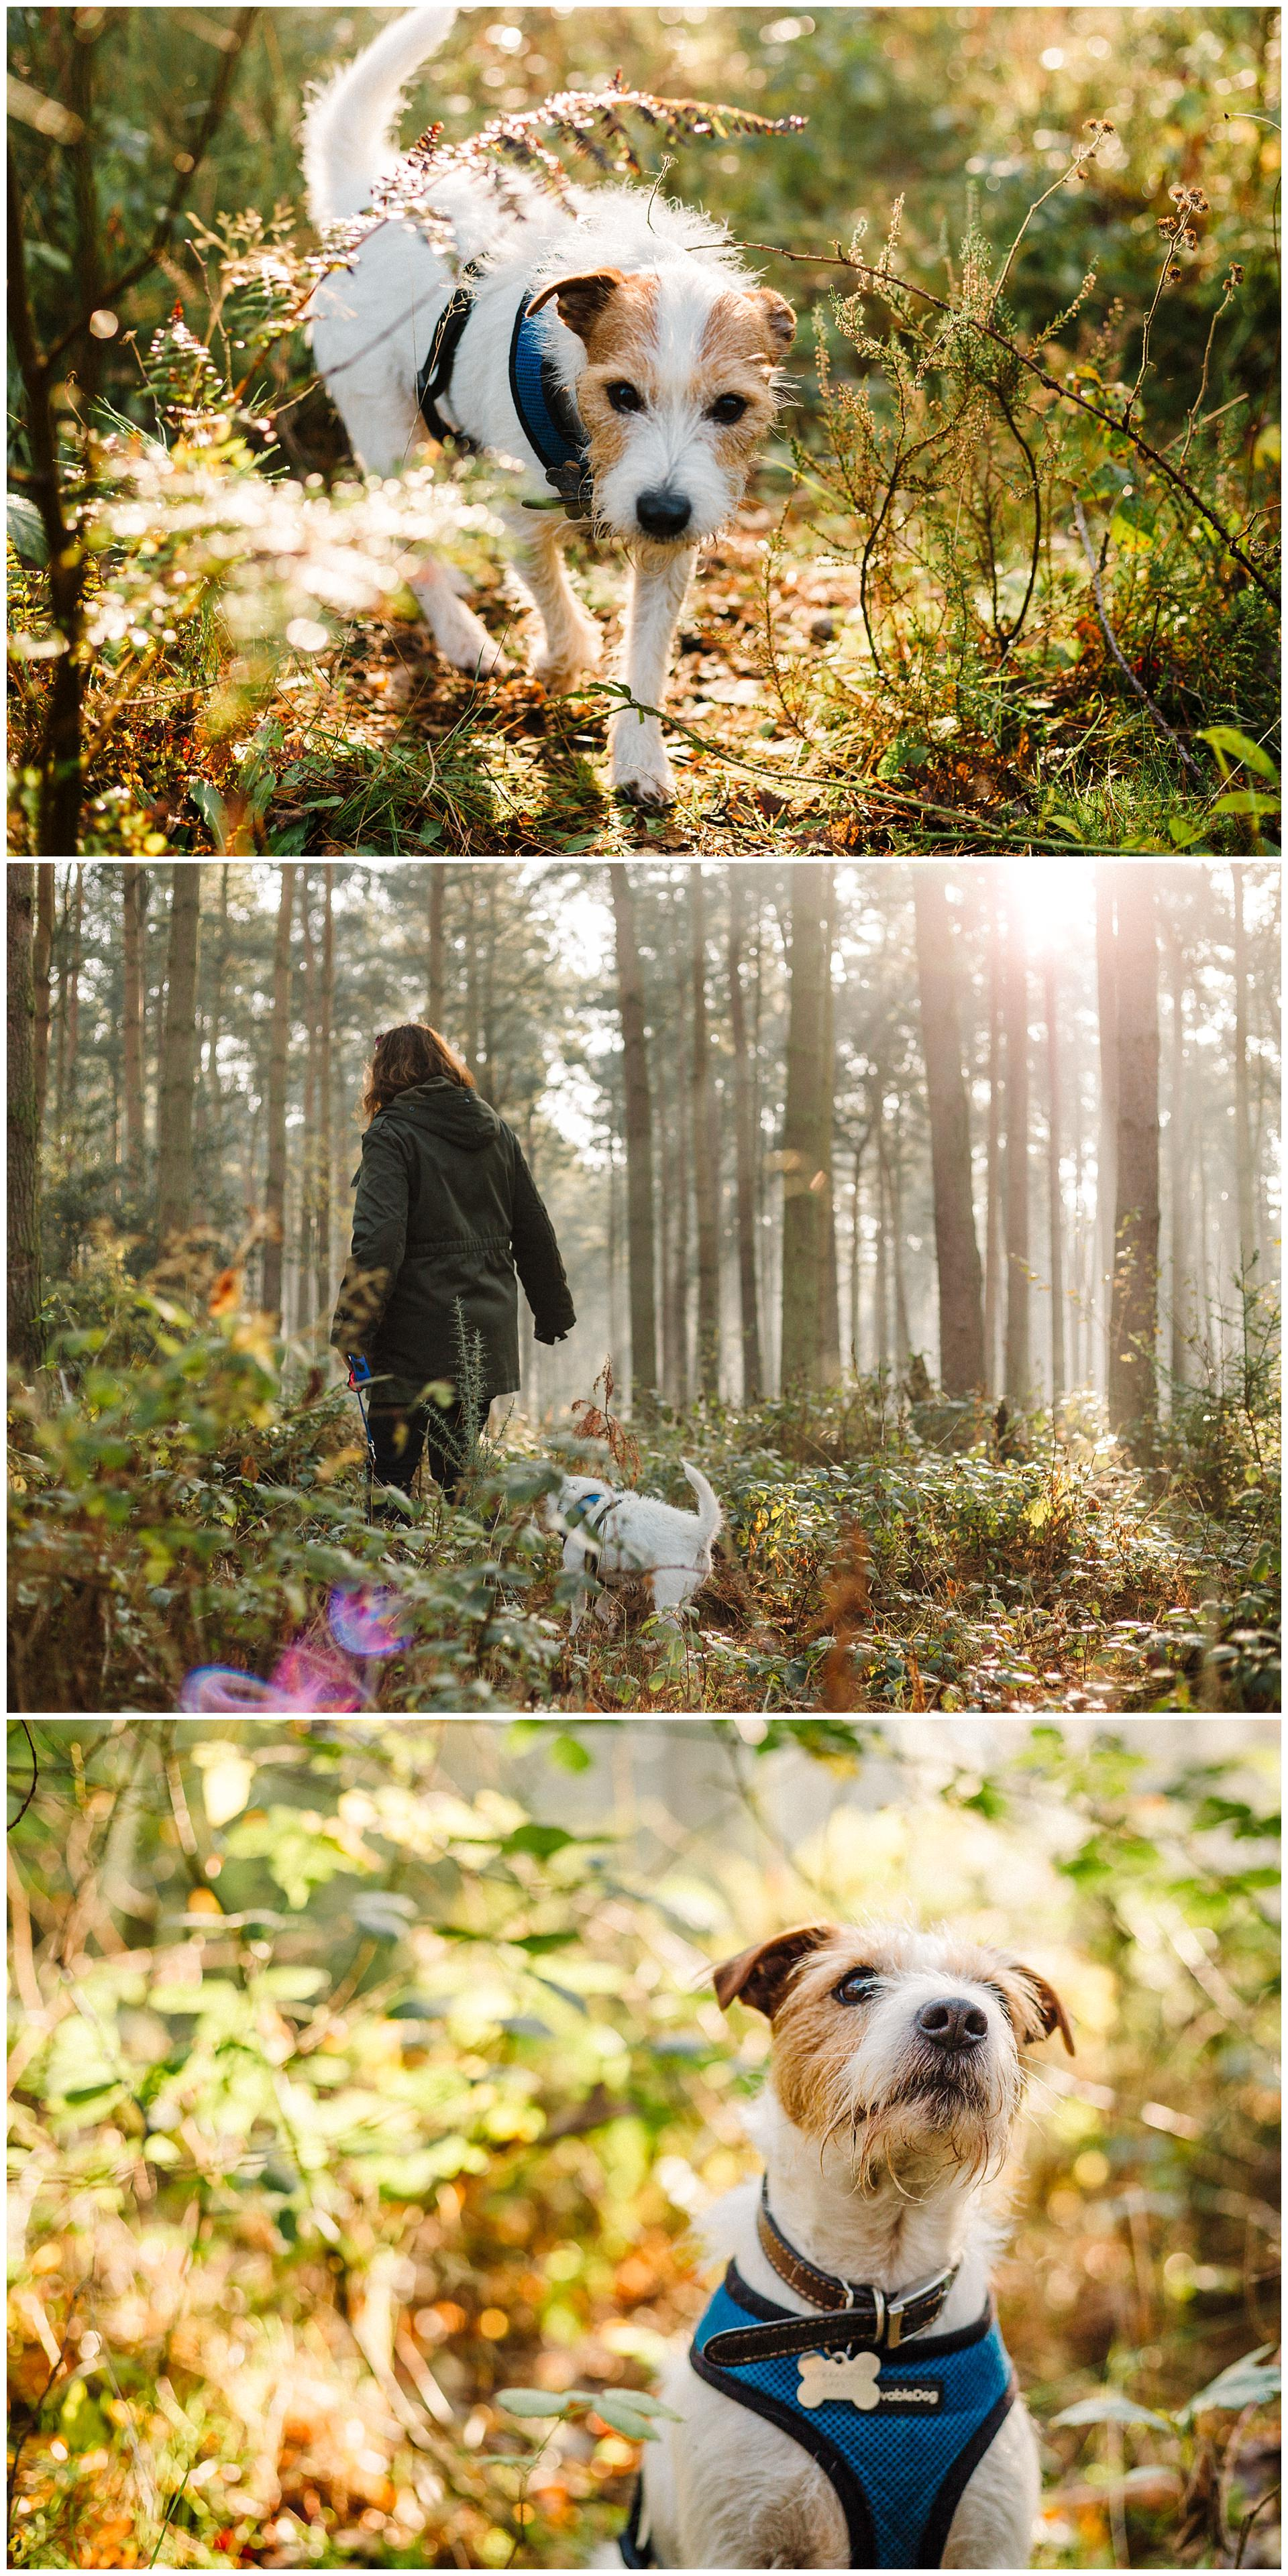 Three images of a Parson Russell Terrier walking in the woods